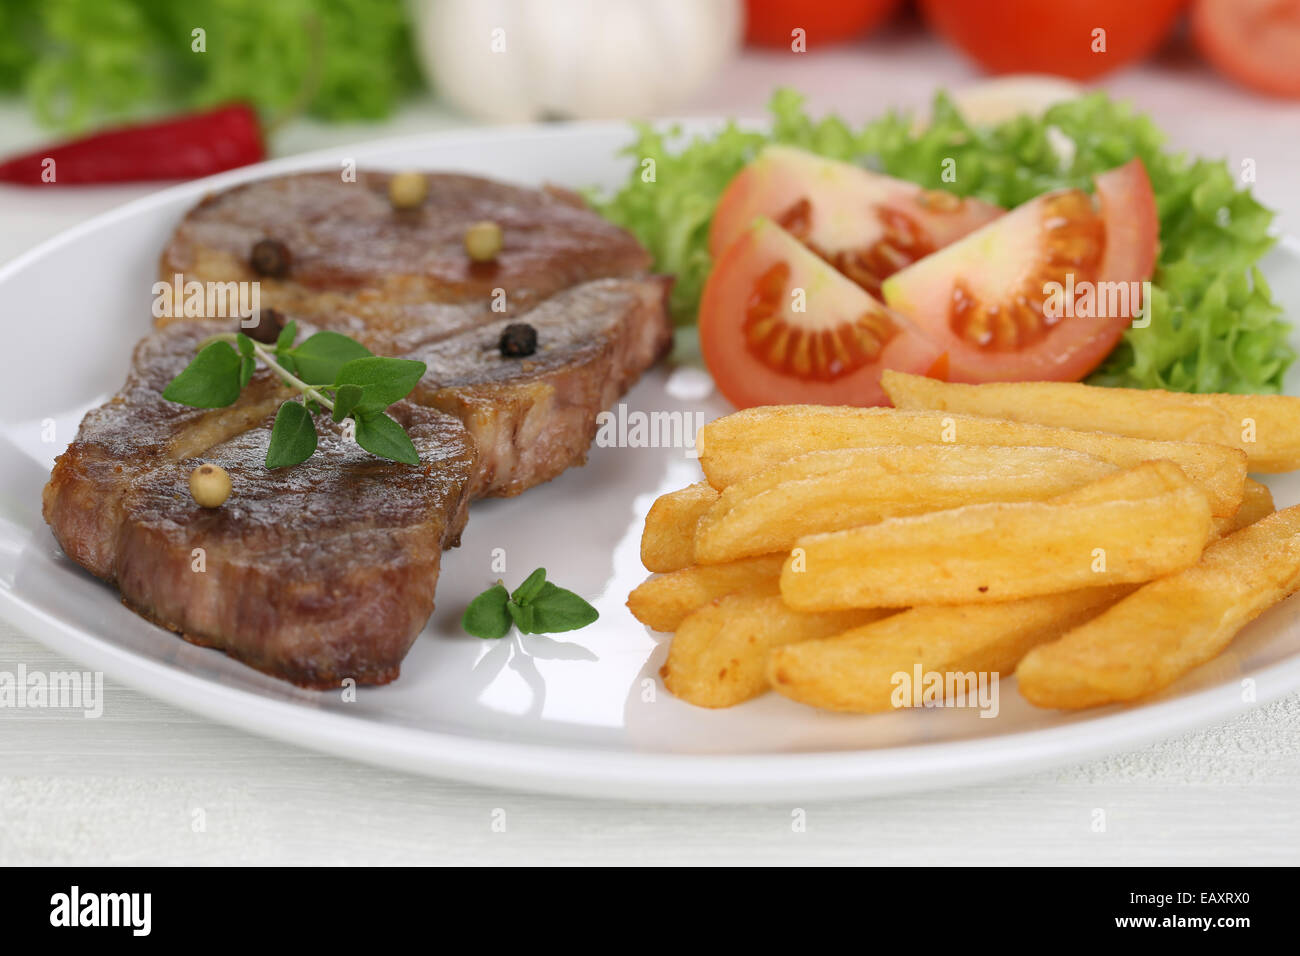 Pork chop steak cutlet meat meal with fries, vegetables and lettuce on plate - Stock Image